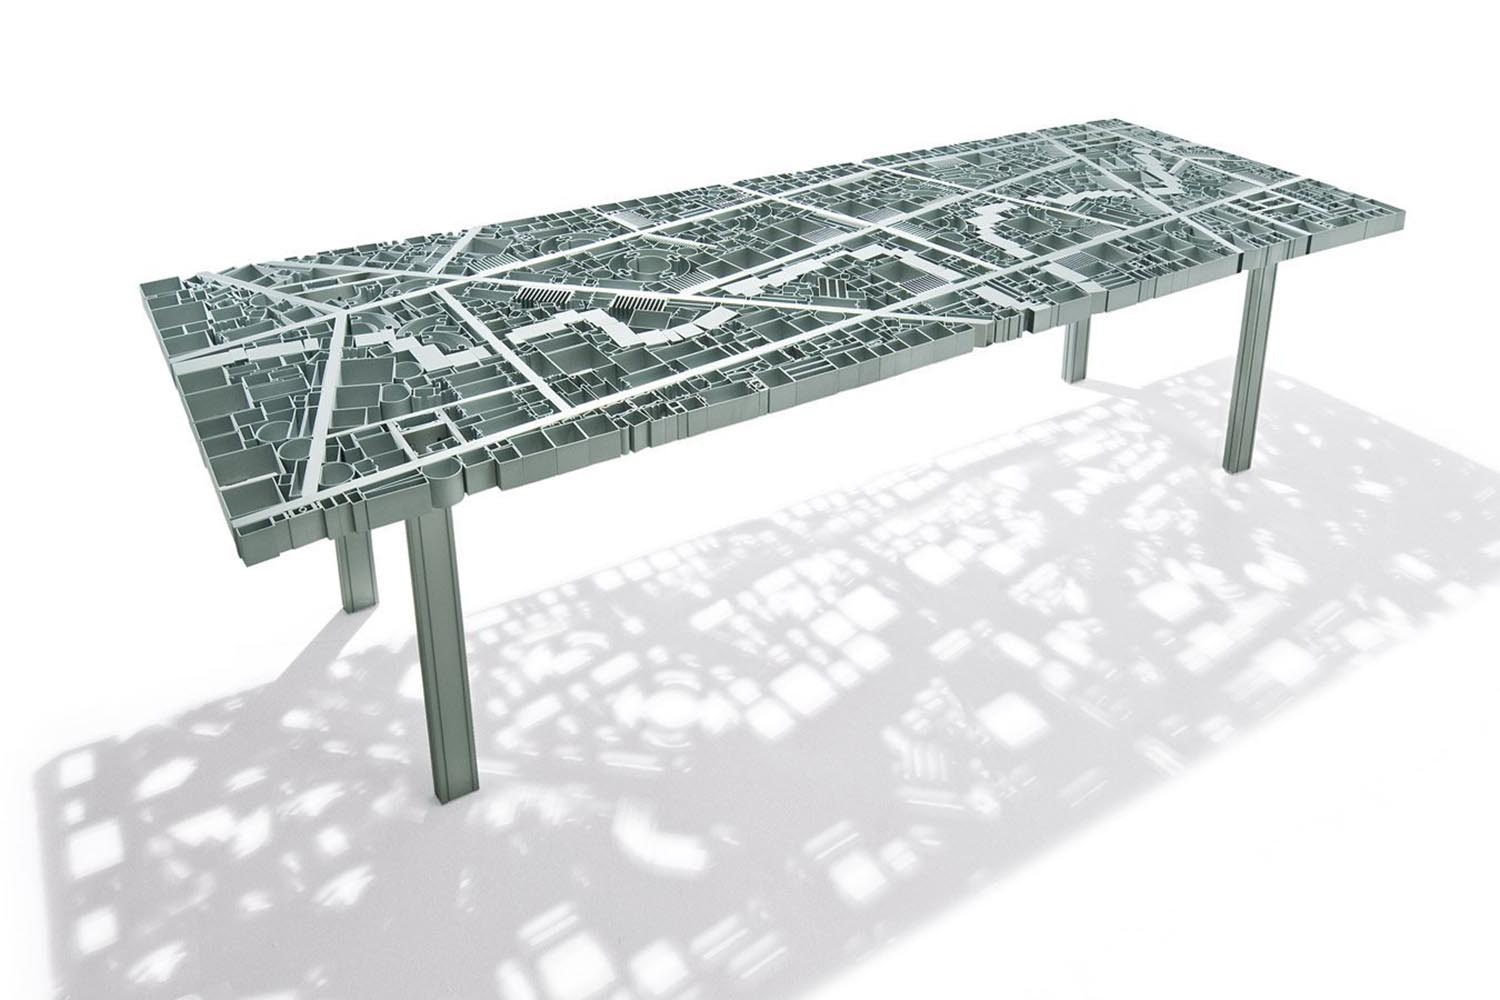 Baghdad Table by Ezri Tarazi for Edra